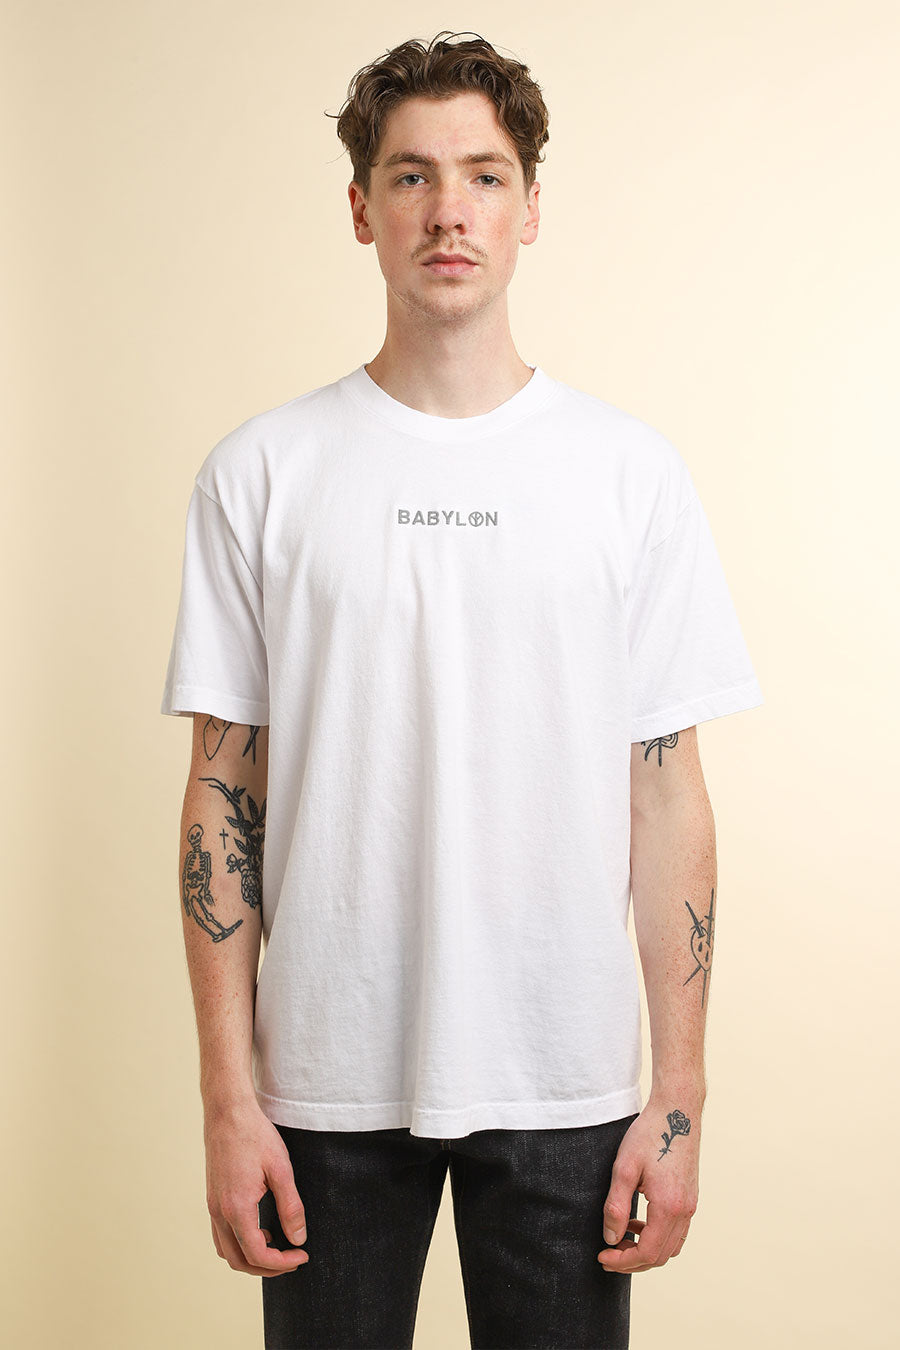 Babylon - White 3M Shop T-Shirt